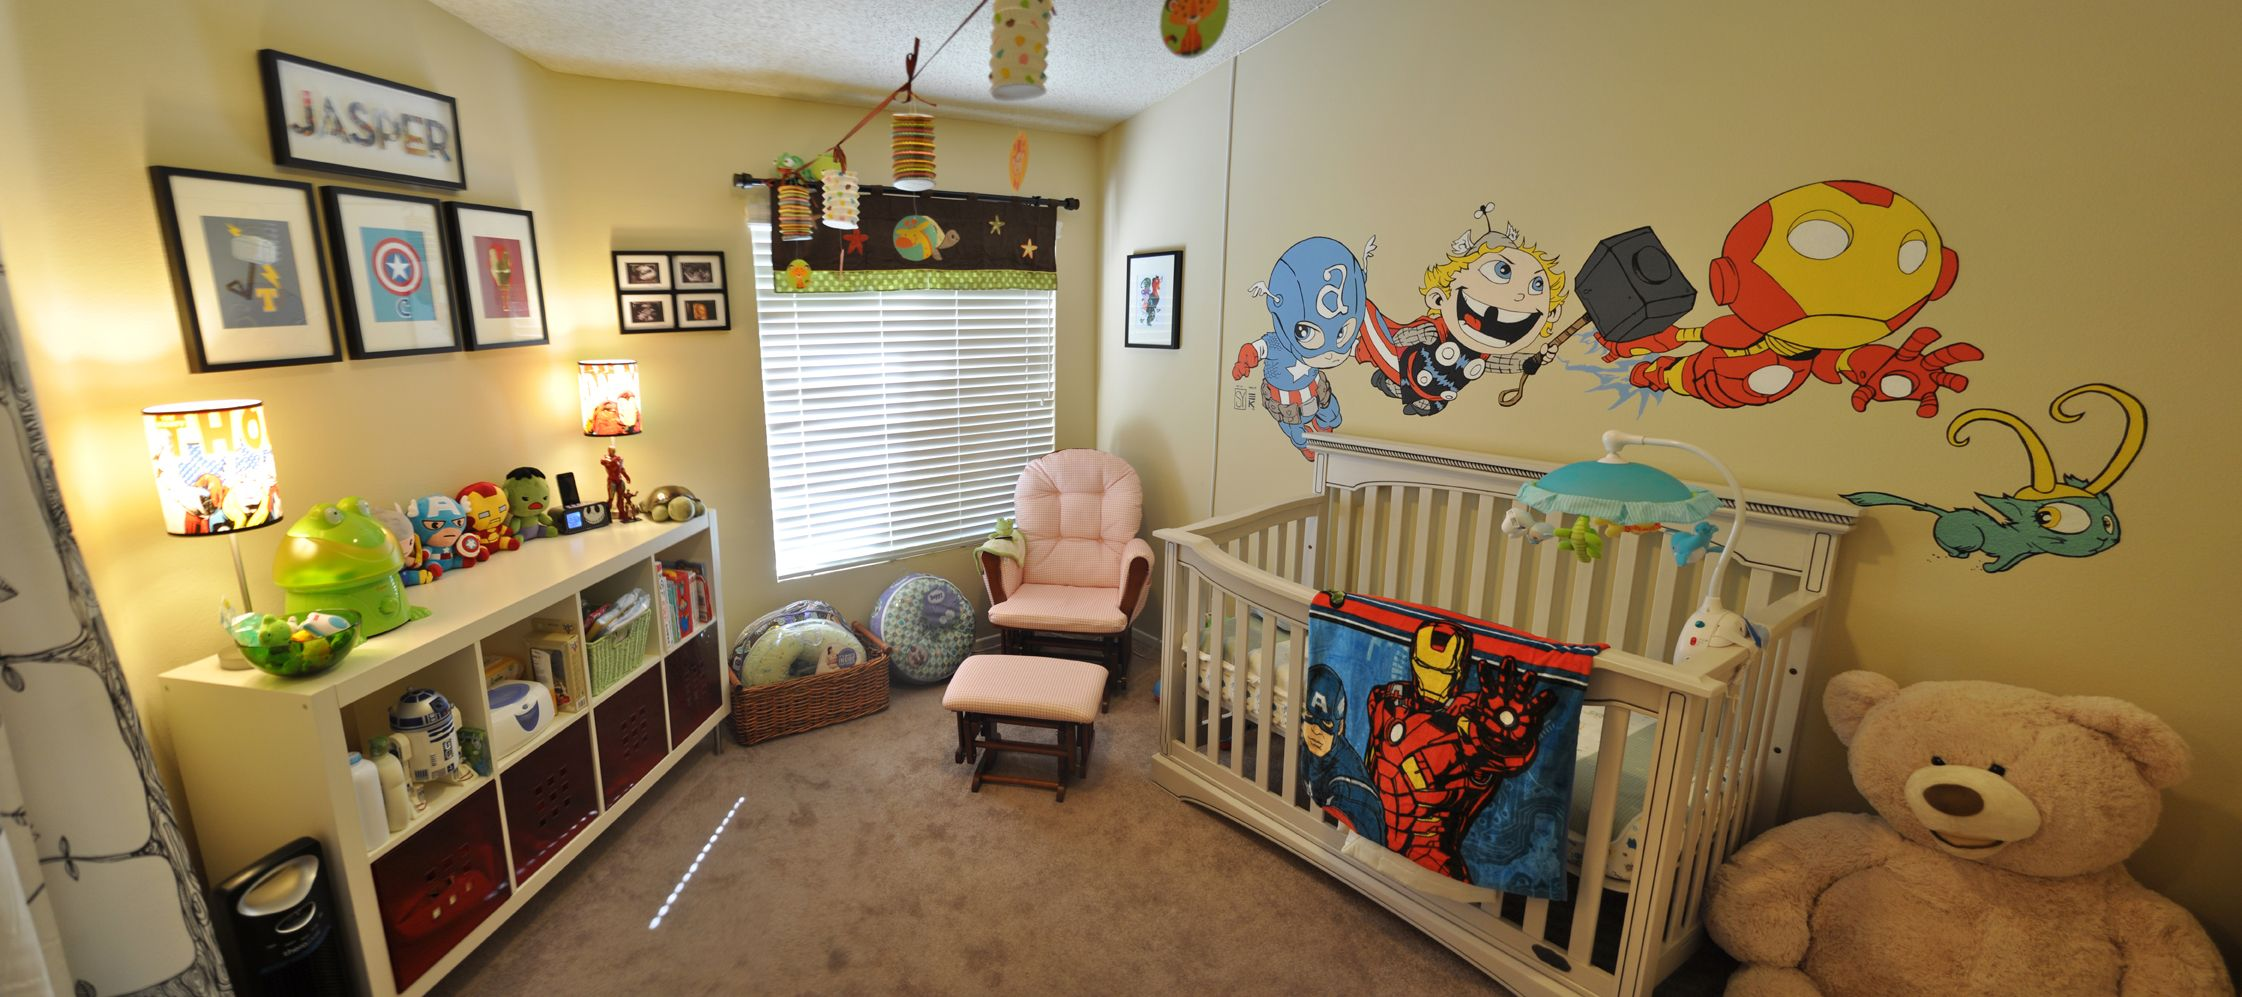 This Is What My Baby S Nursery Will Look Like Home Mods